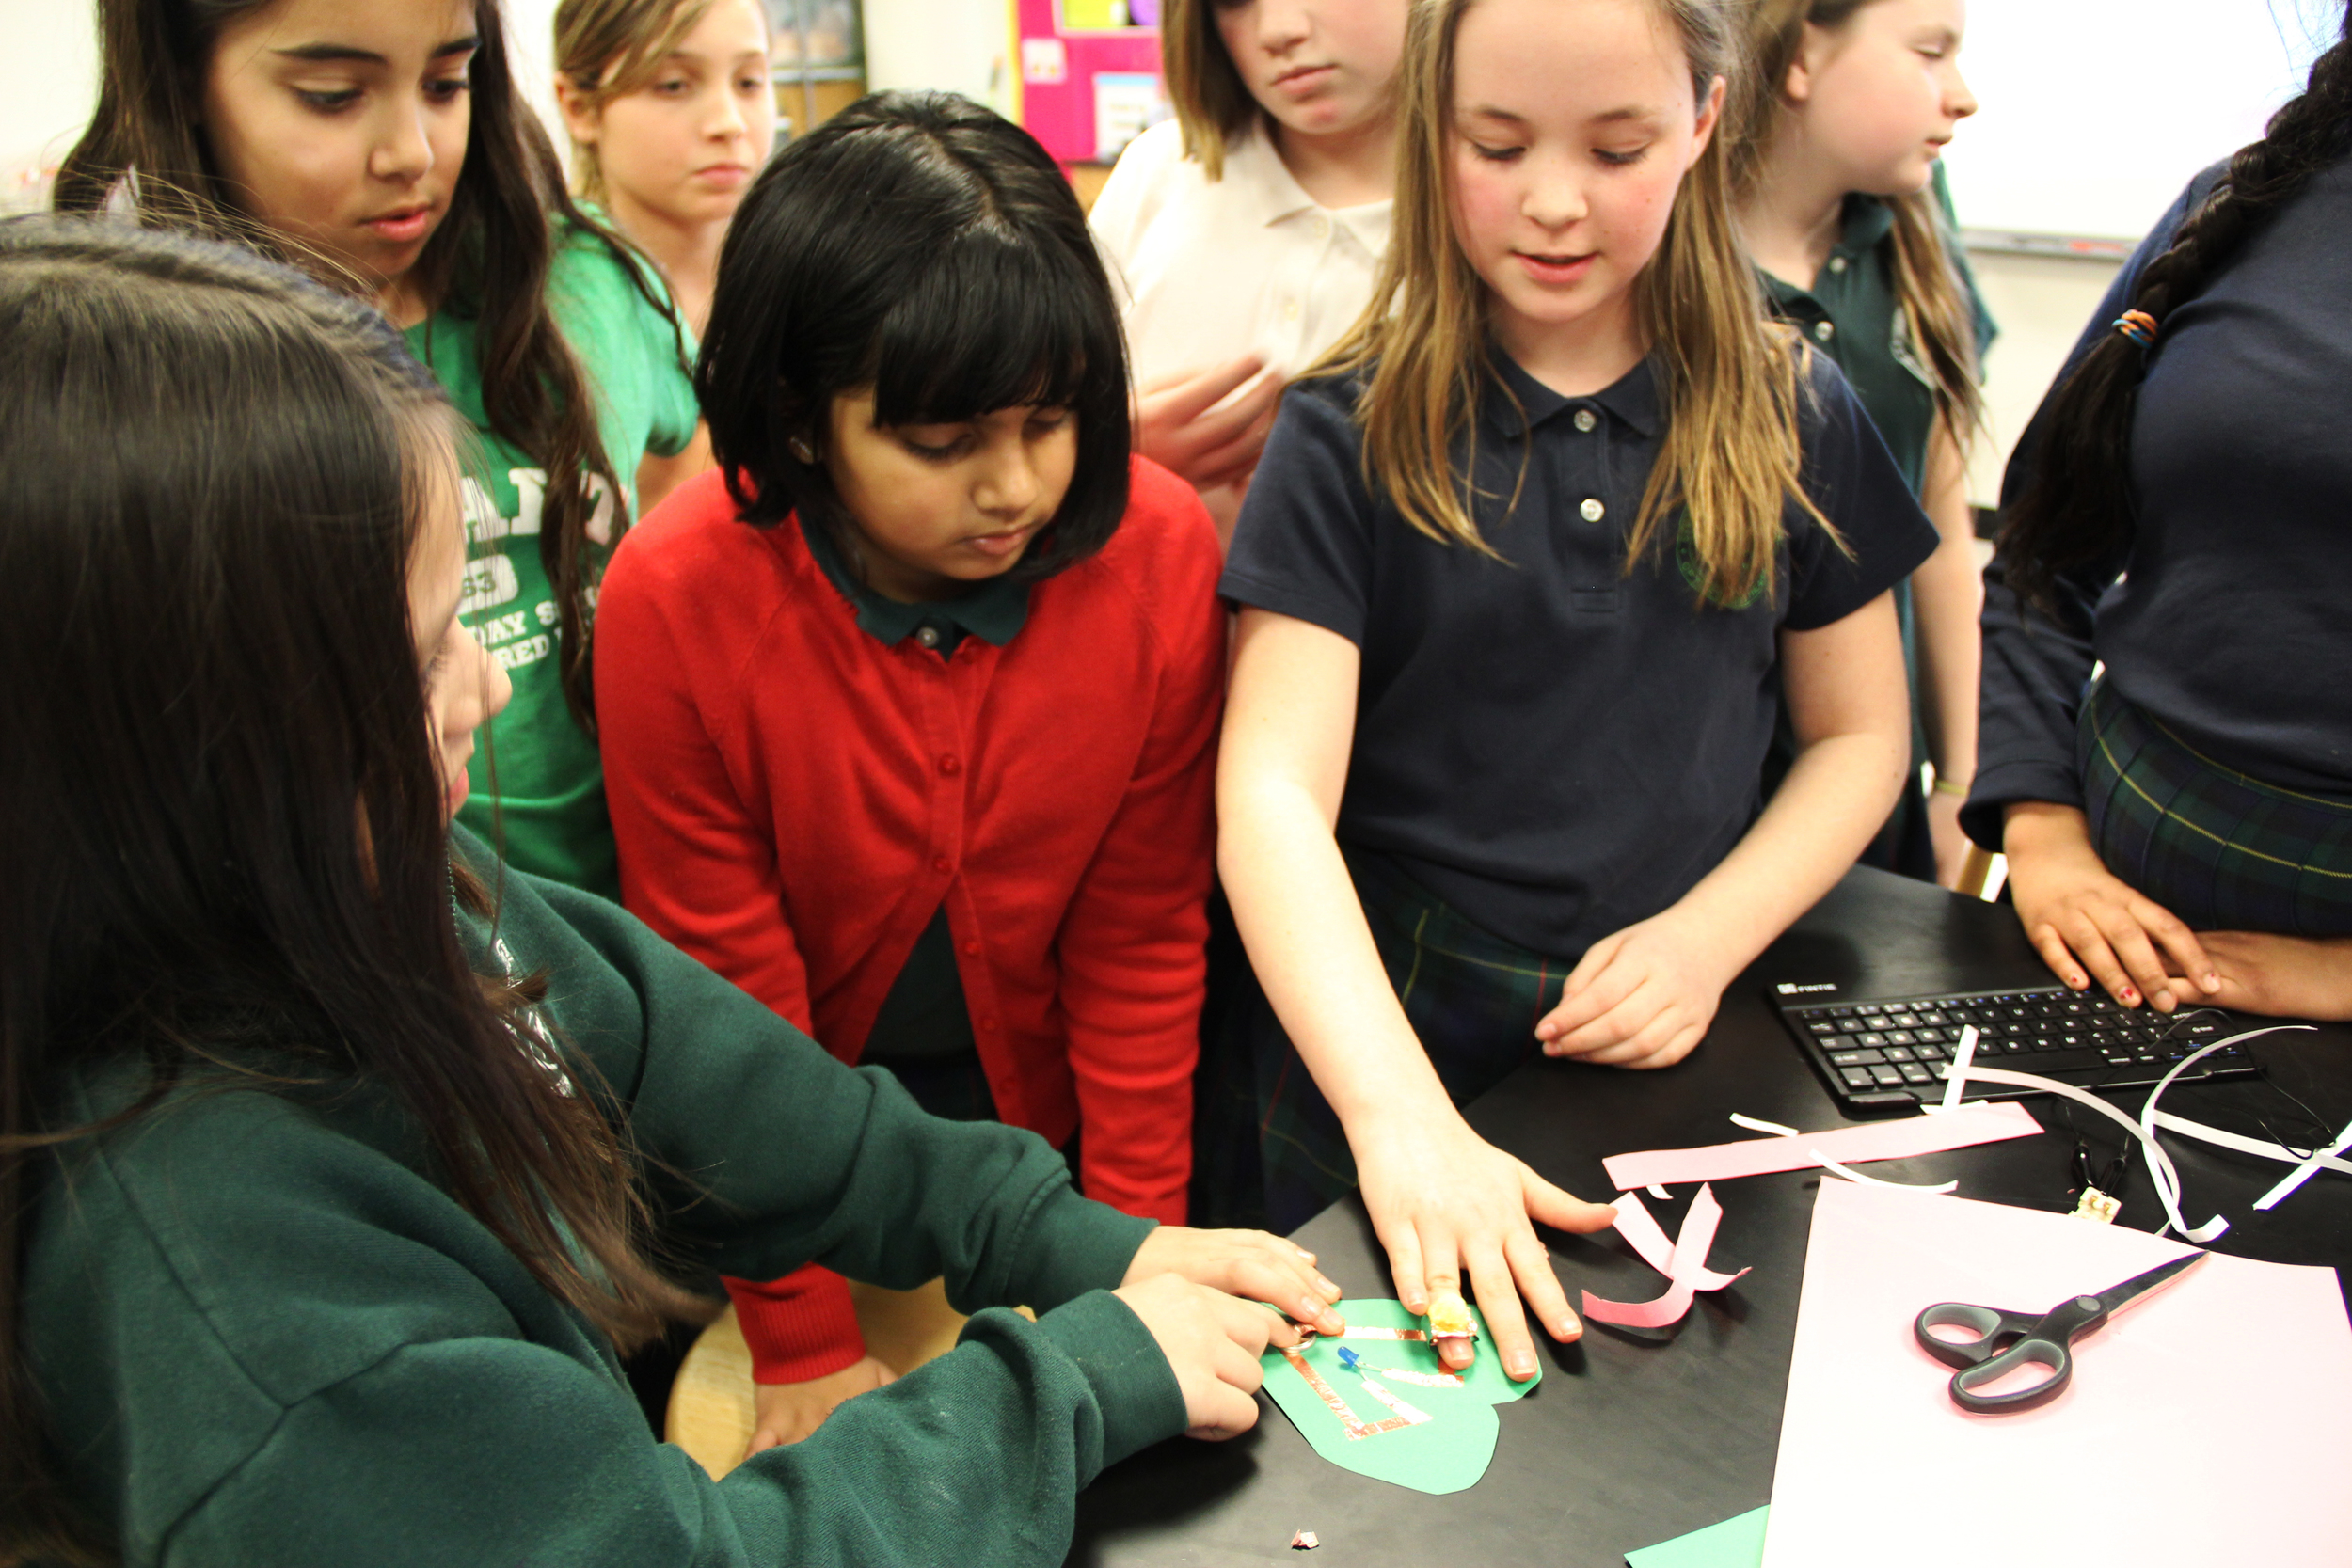 Demoing their paper circuit and wearable ring acting as a switch to light up